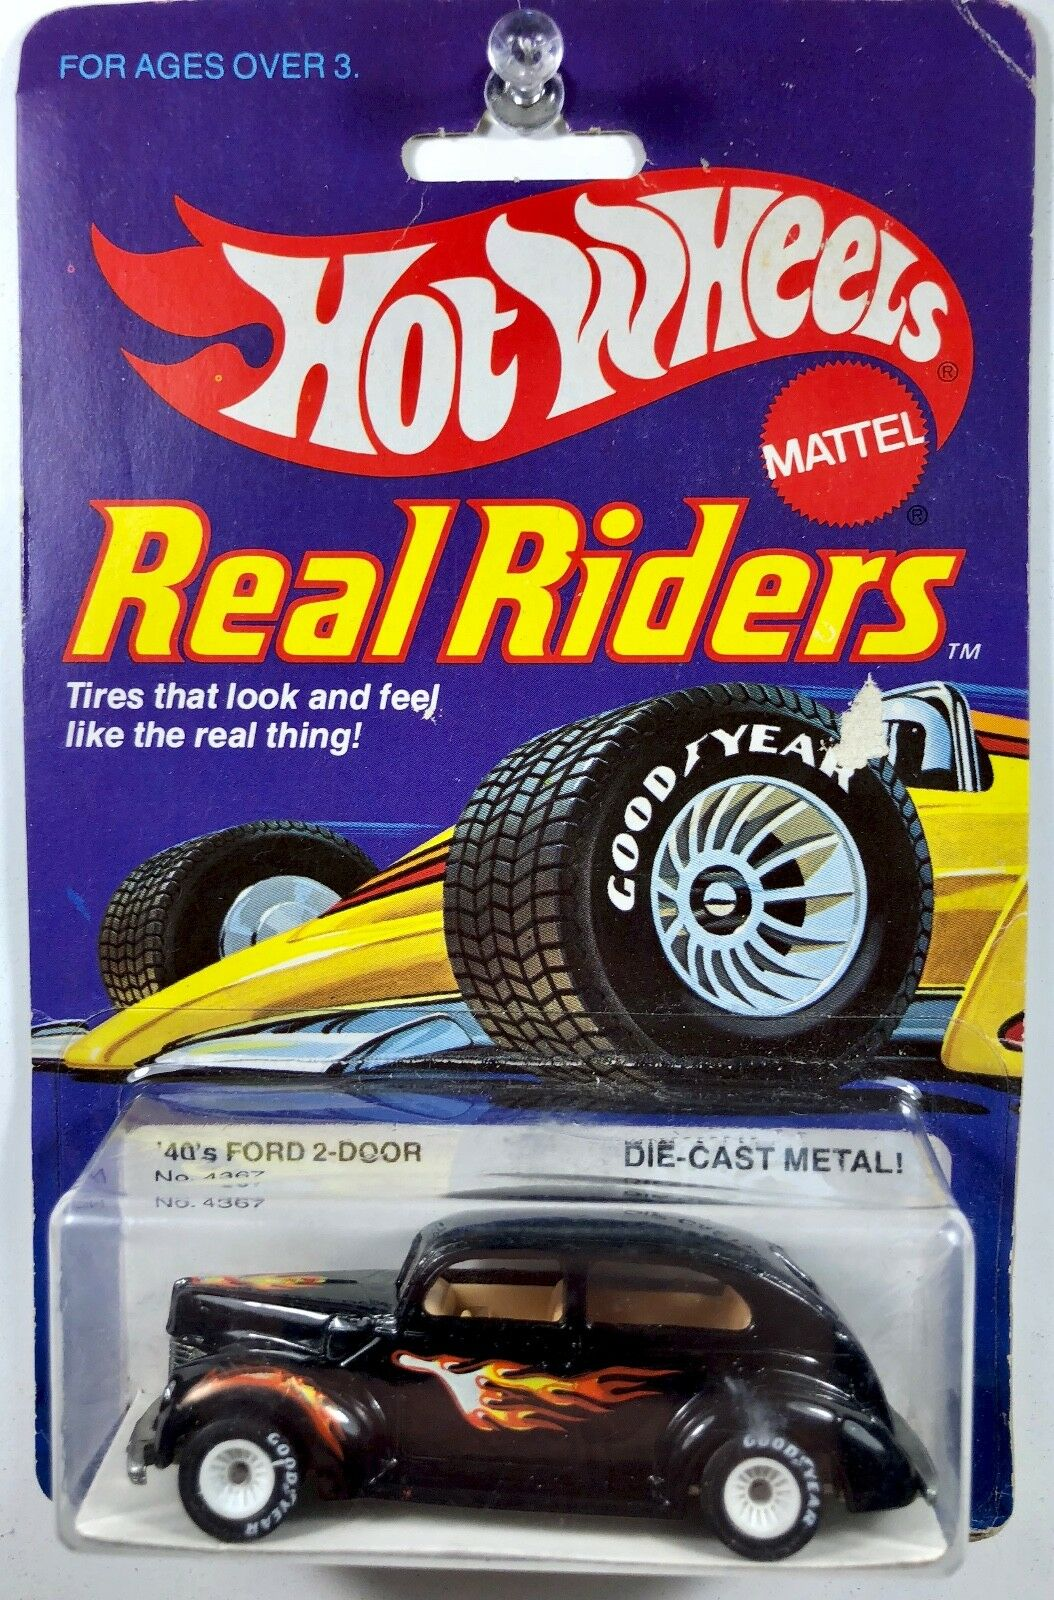 Hot Wheels 40 Ford 2-Door, Real Riders - White Hubs - RARE